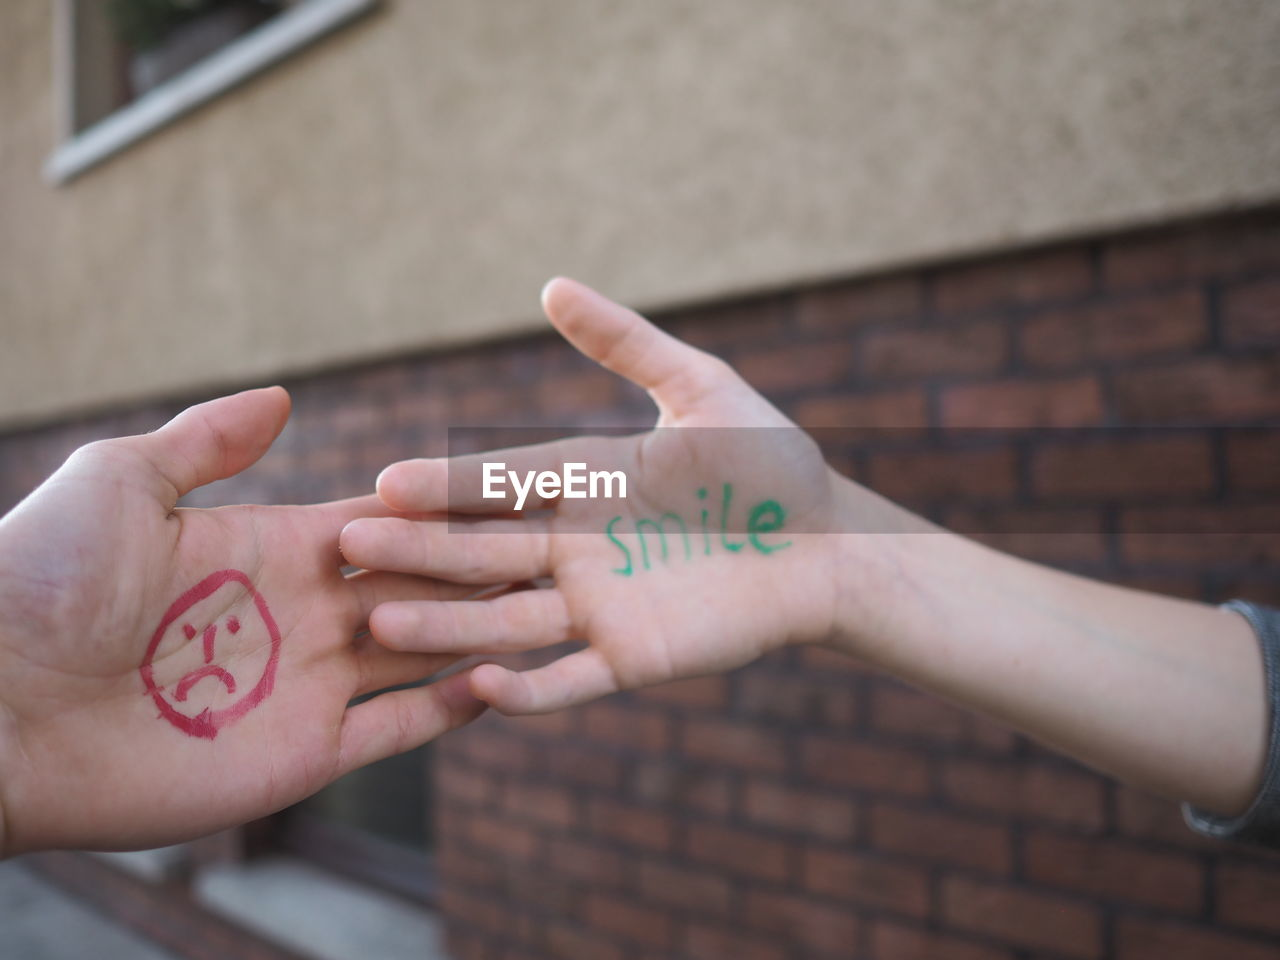 Cropped Hands With Anthropomorphic Face And Text On Palms Against Building